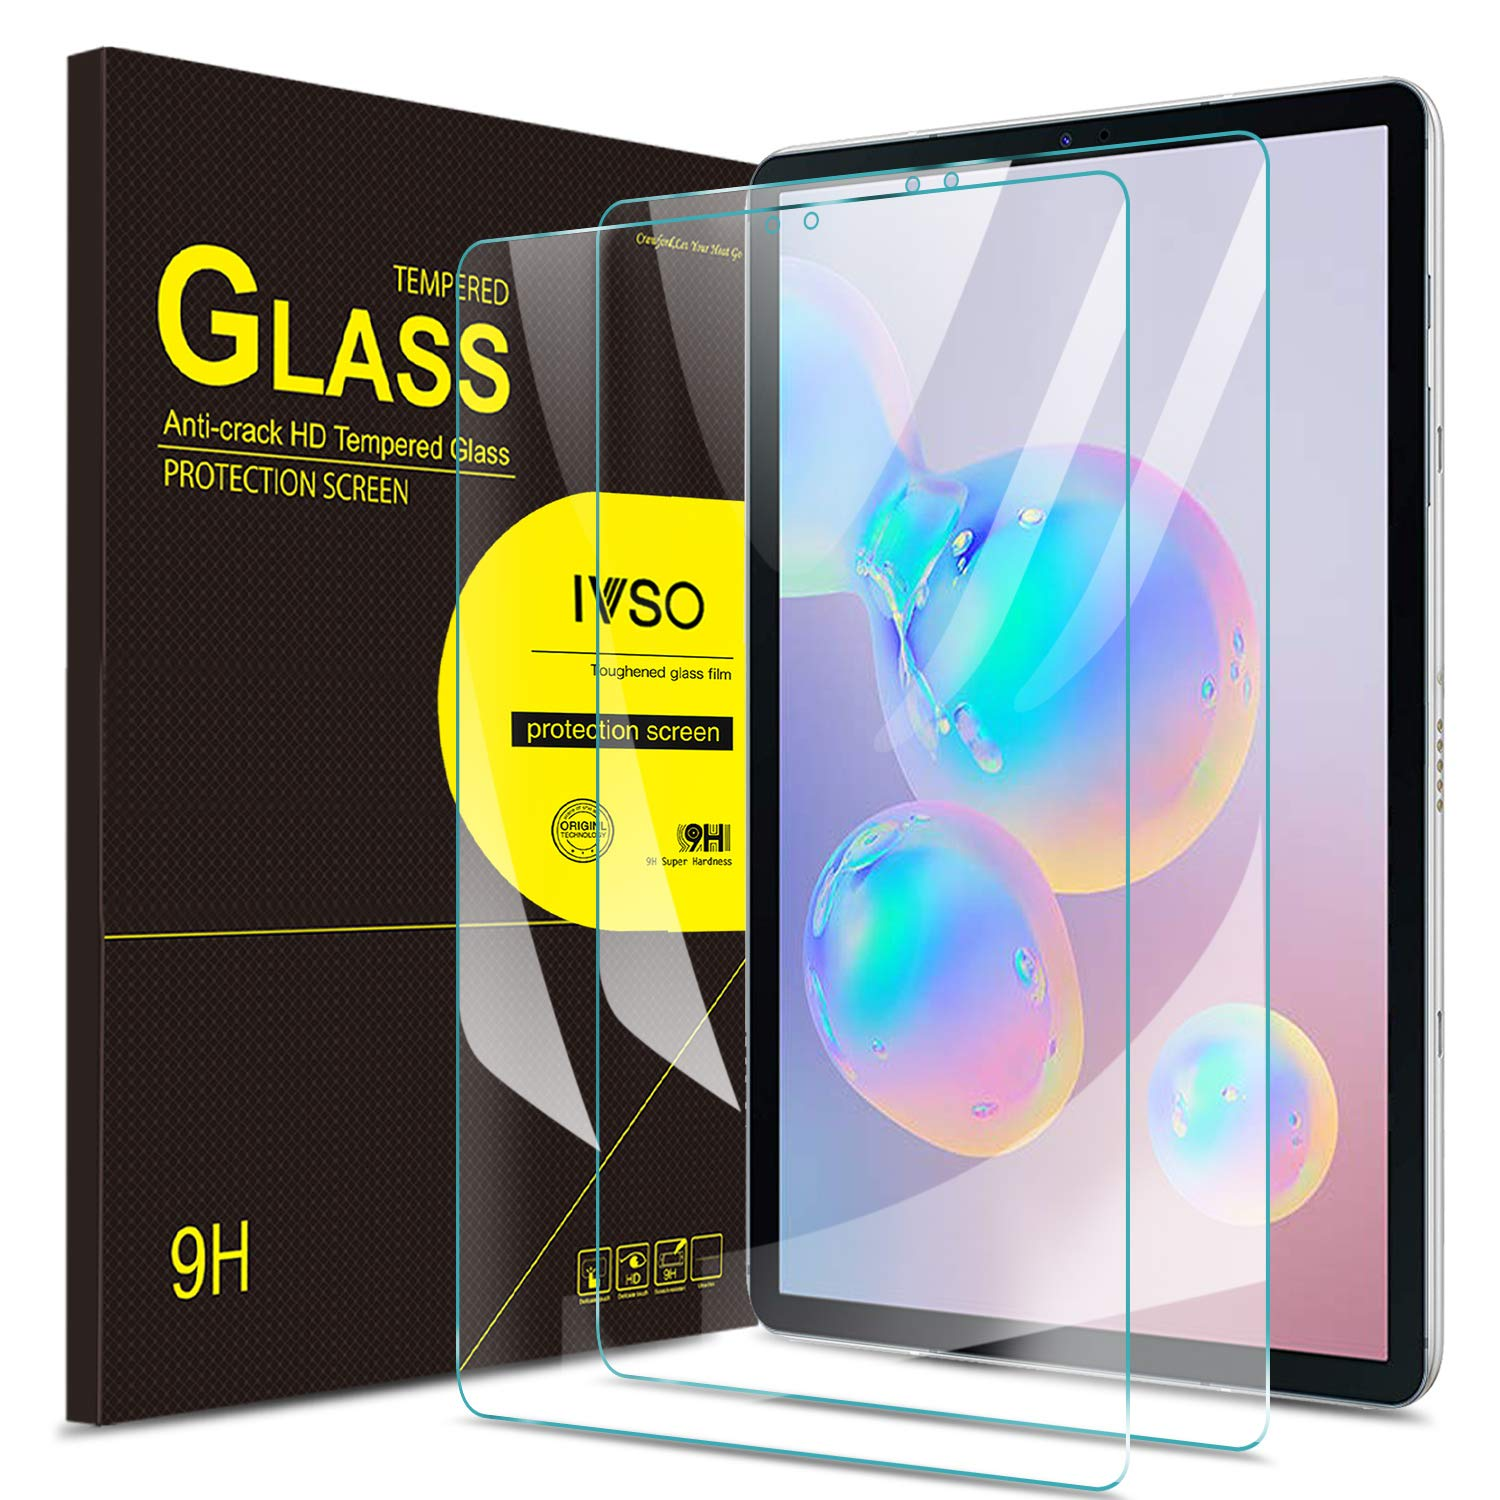 IVSO Screen Protector for Samsung Galaxy TAB S6/S5e,No-Bubble HD Clear Tempered Glass Screen Protector for Samsung Galaxy Tab S5e SM-T720 (Wi-Fi) SM-T725 (LTE) SM-T860 10.5 inches 2019 Release Tablet